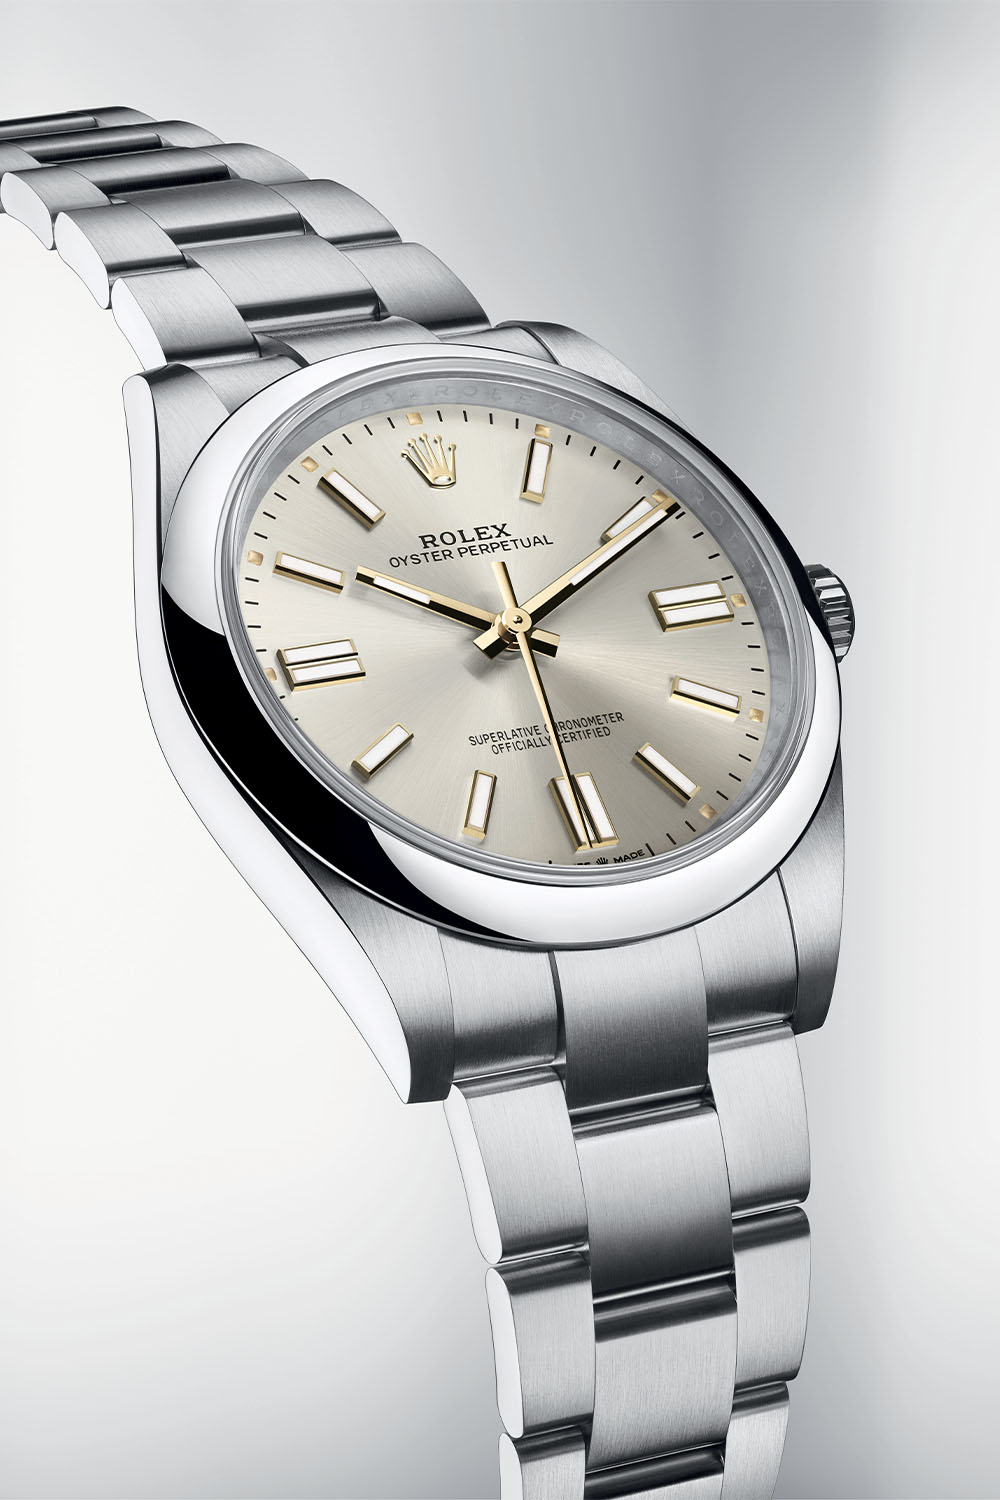 2020 Rolex Oyster Perpetual 41 reference 124300 - 4